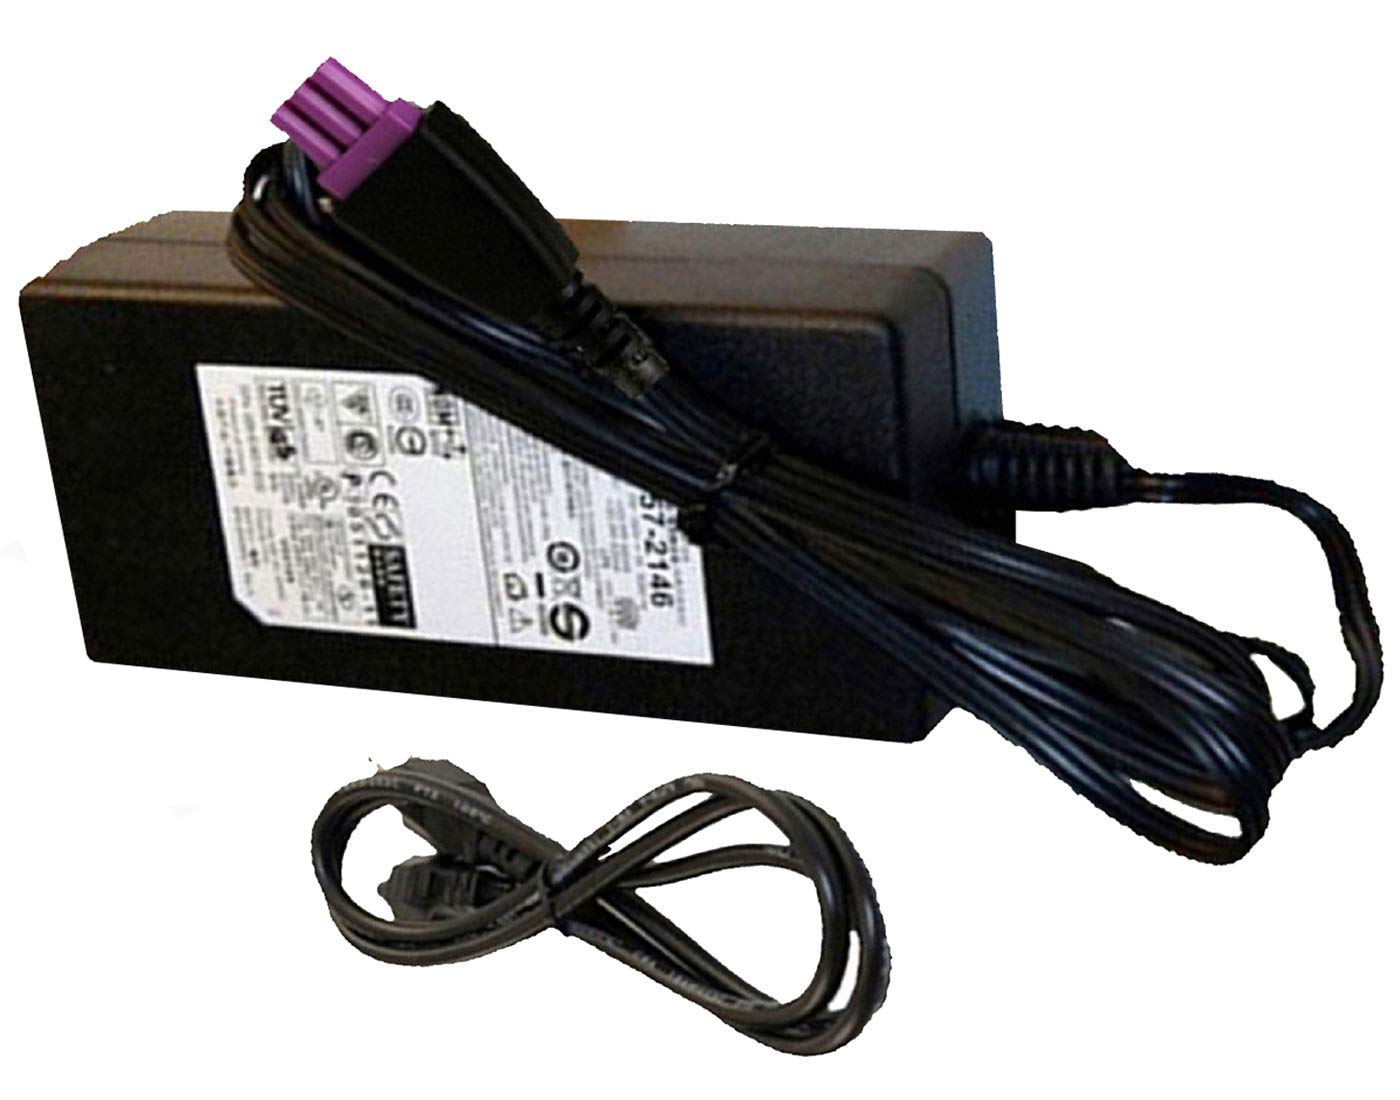 New AC Adapter 0957-2286 30V 333mA For HP 1050 1000 2050 Printer Power Supply